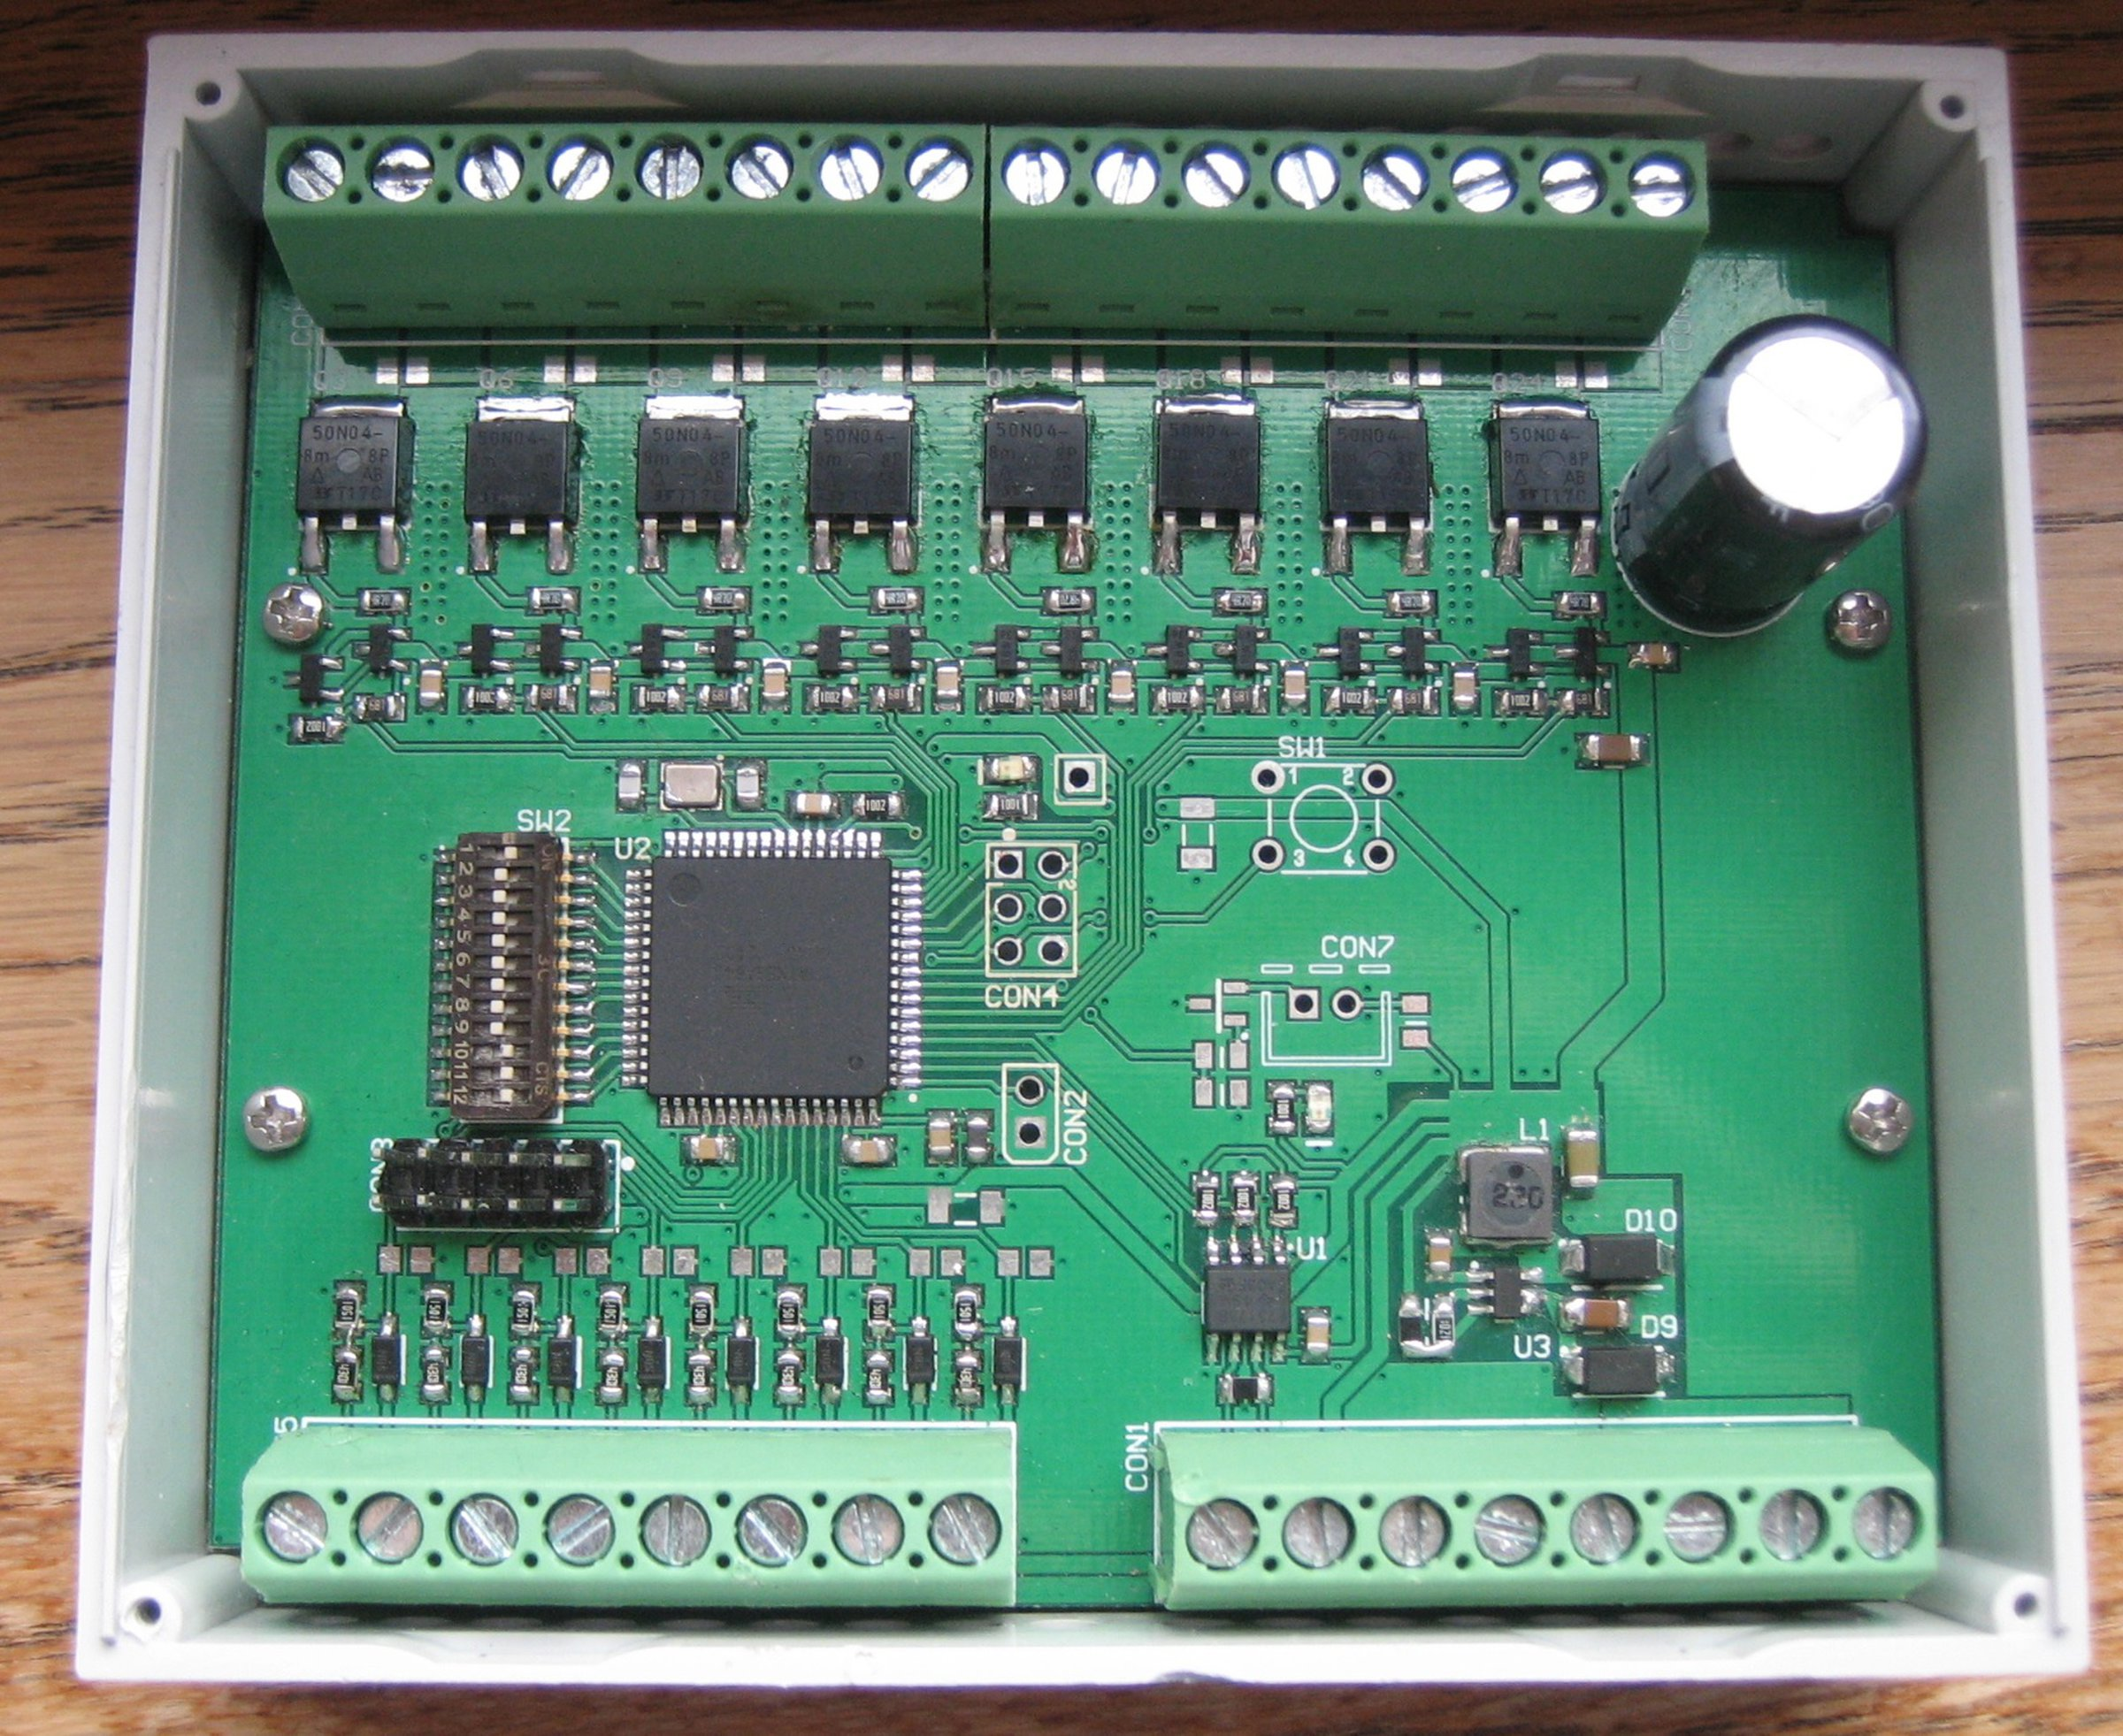 8ch LED dimmer (0-10V, DMX, Modbus) from nbTec.be on Tindie